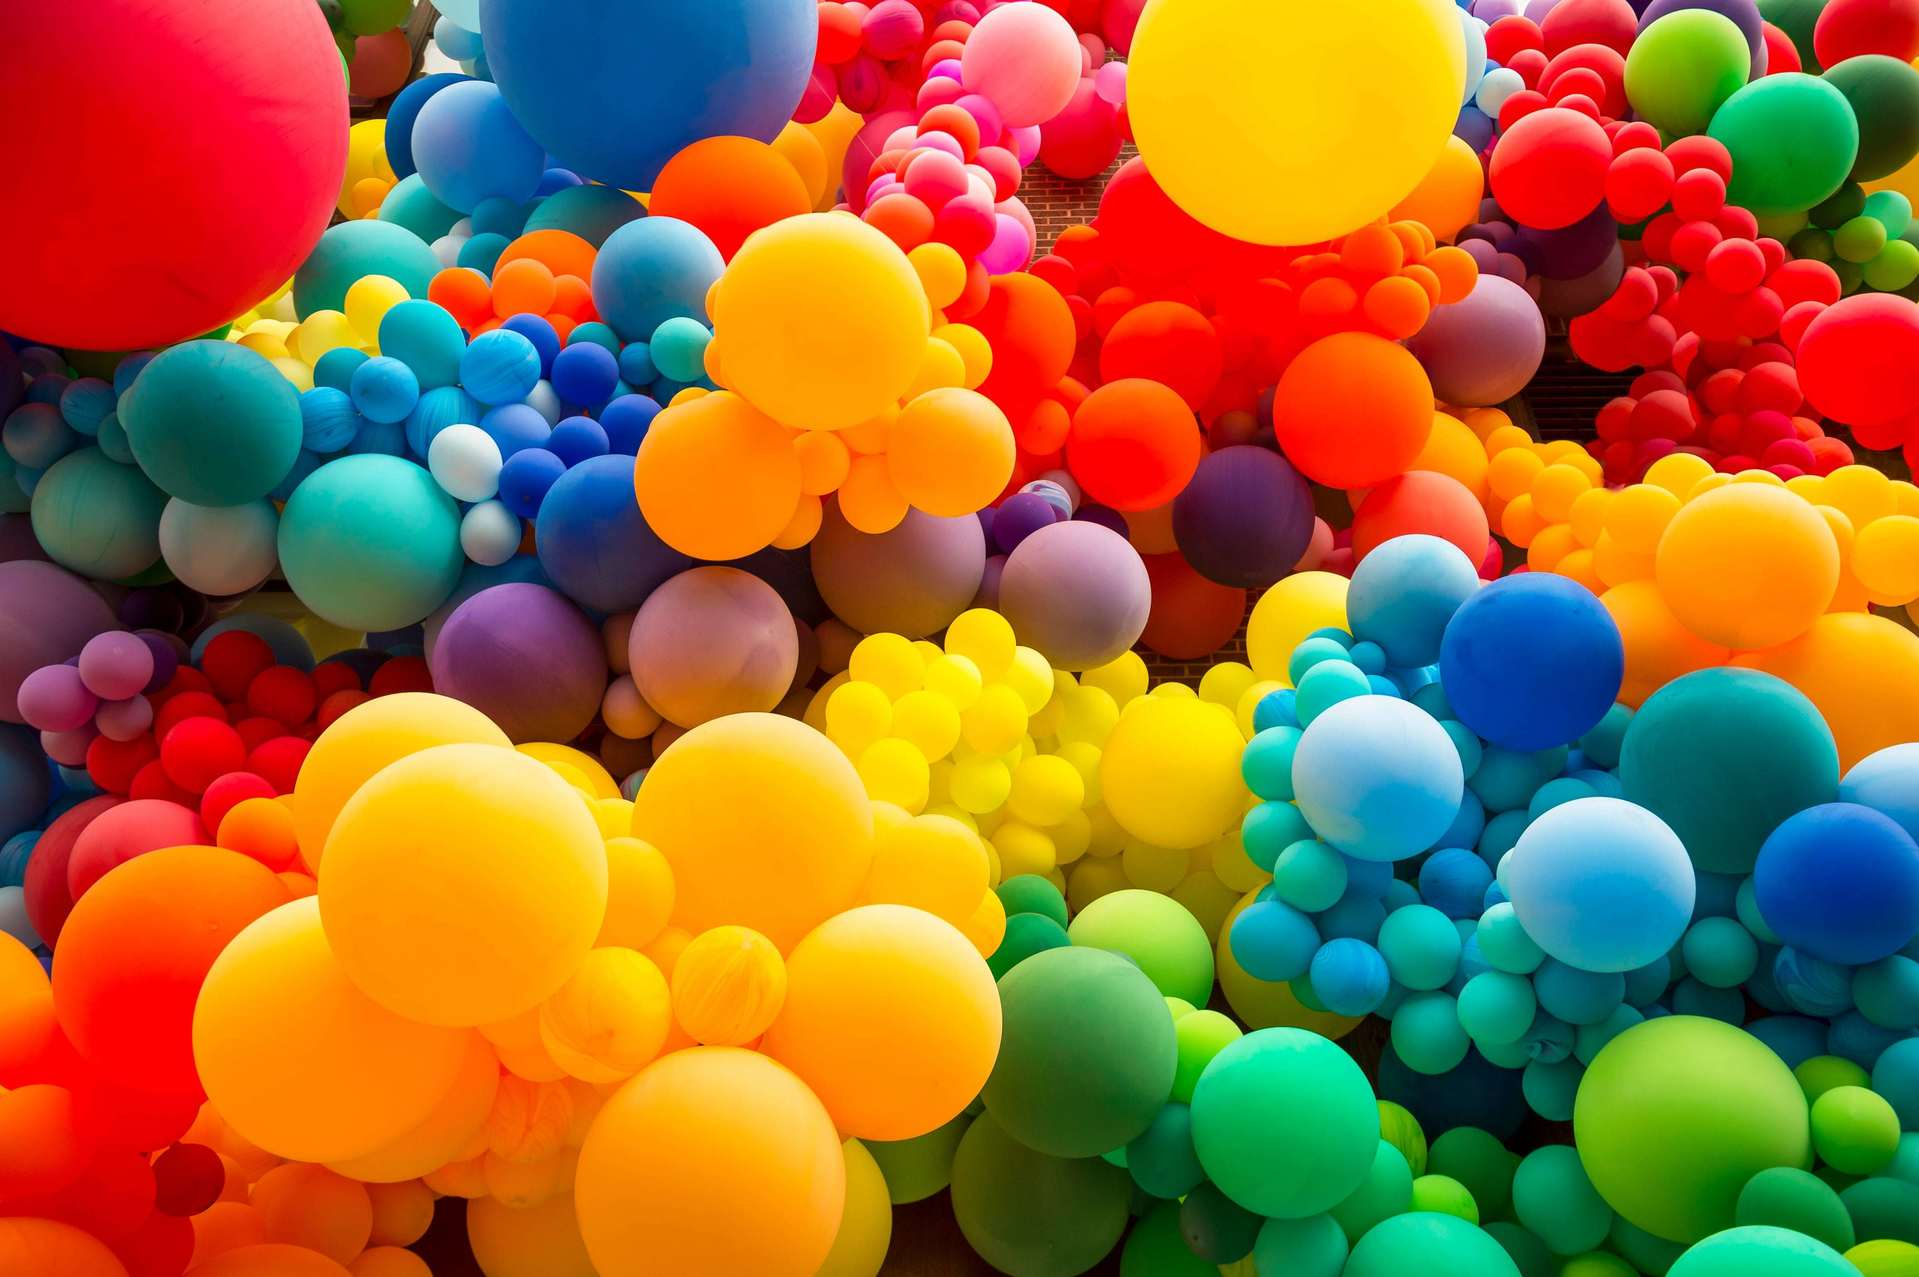 Top Wholesale Balloons Suppliers and Manufacturers in the USA